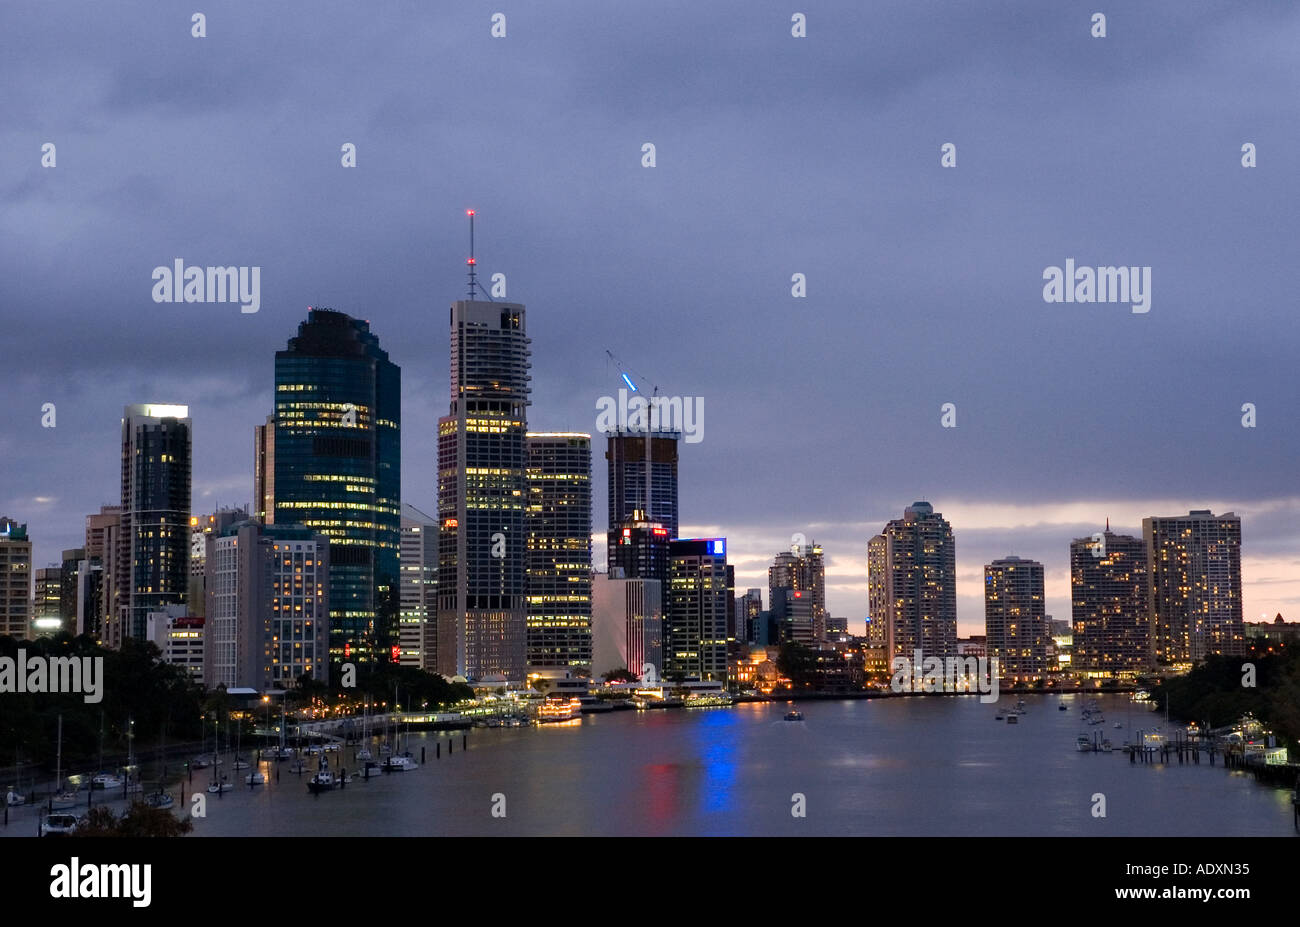 Brisbane at night 3750 - Stock Image